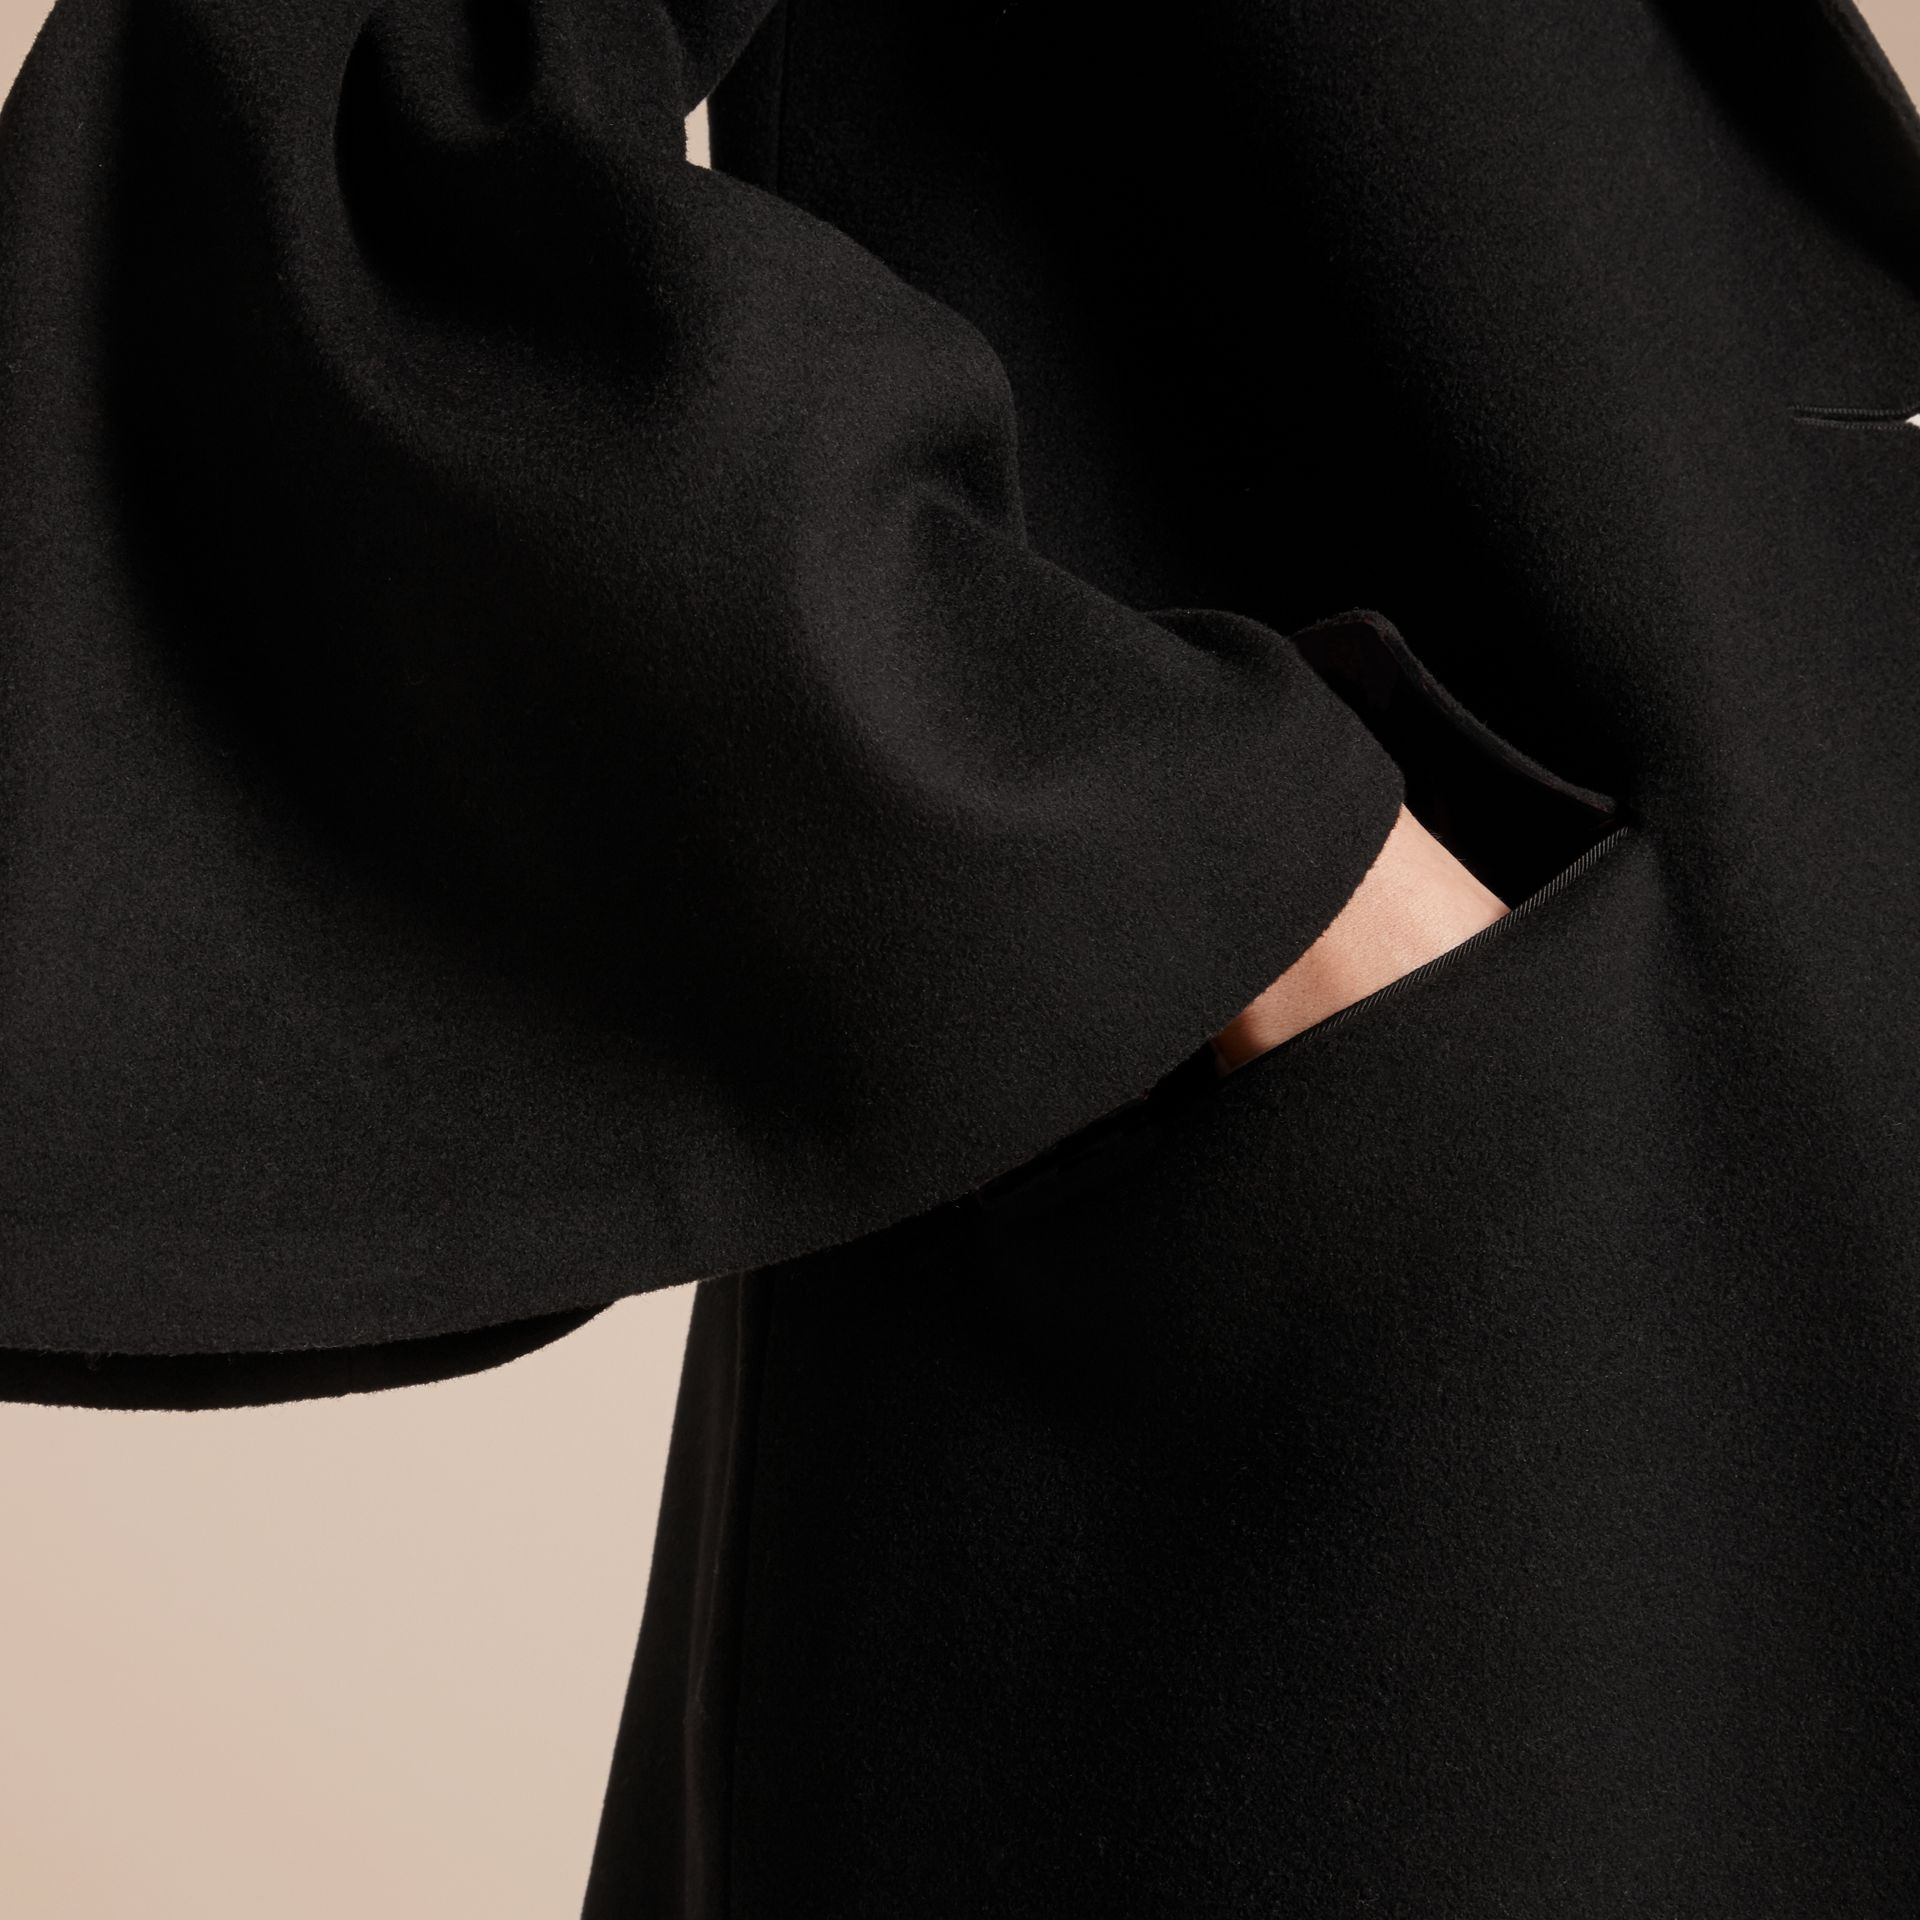 Black Tailored Wool Cashmere Coat with Bell Sleeves Black - gallery image 5